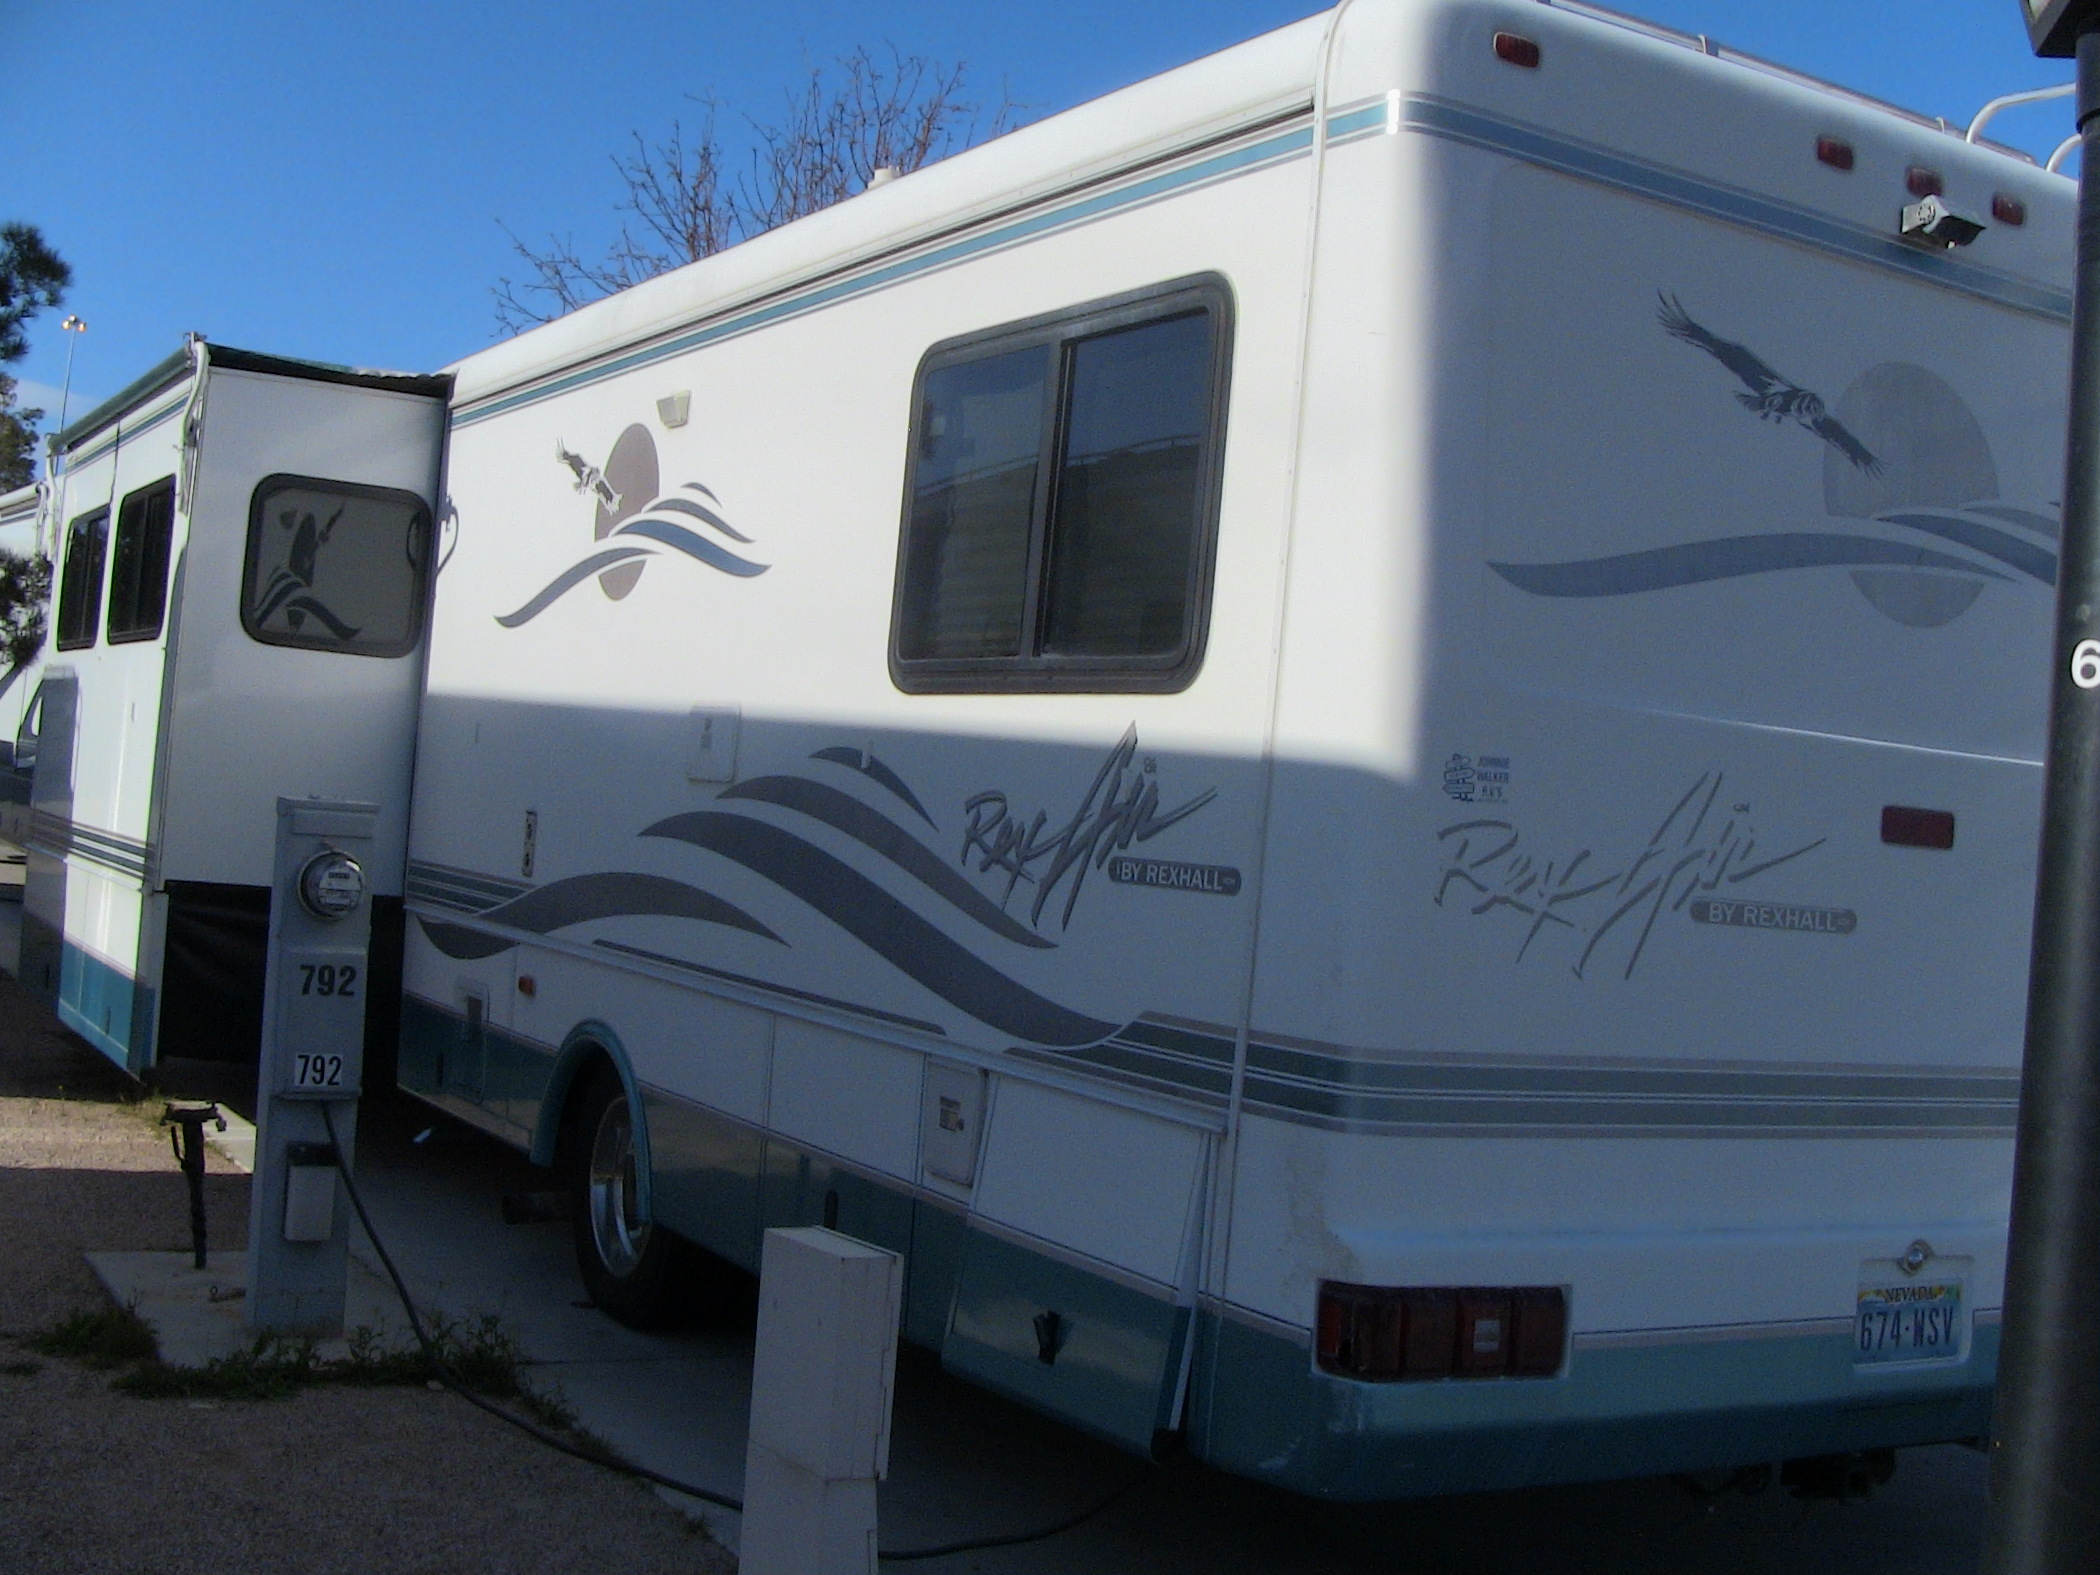 Book Of Rv Motorhome Blue Book In Spain By Emily | fakrub.com